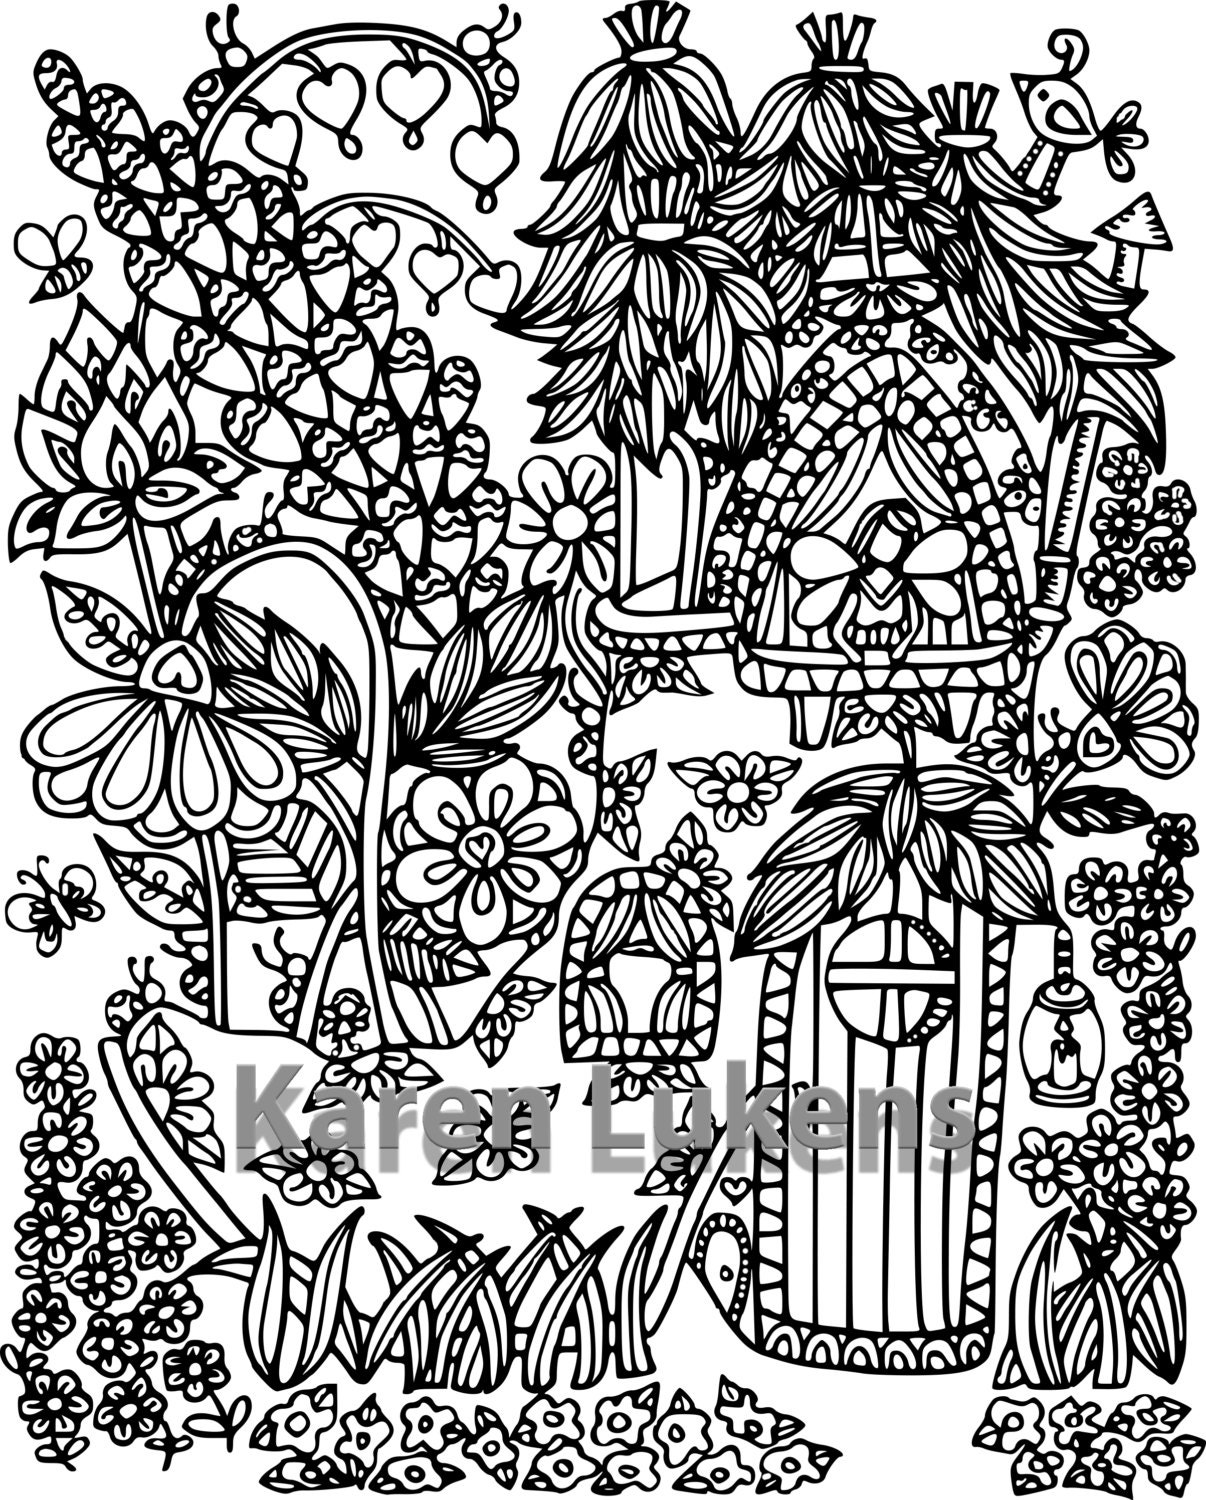 Happyville fairy house 2 1 adult coloring book page etsy